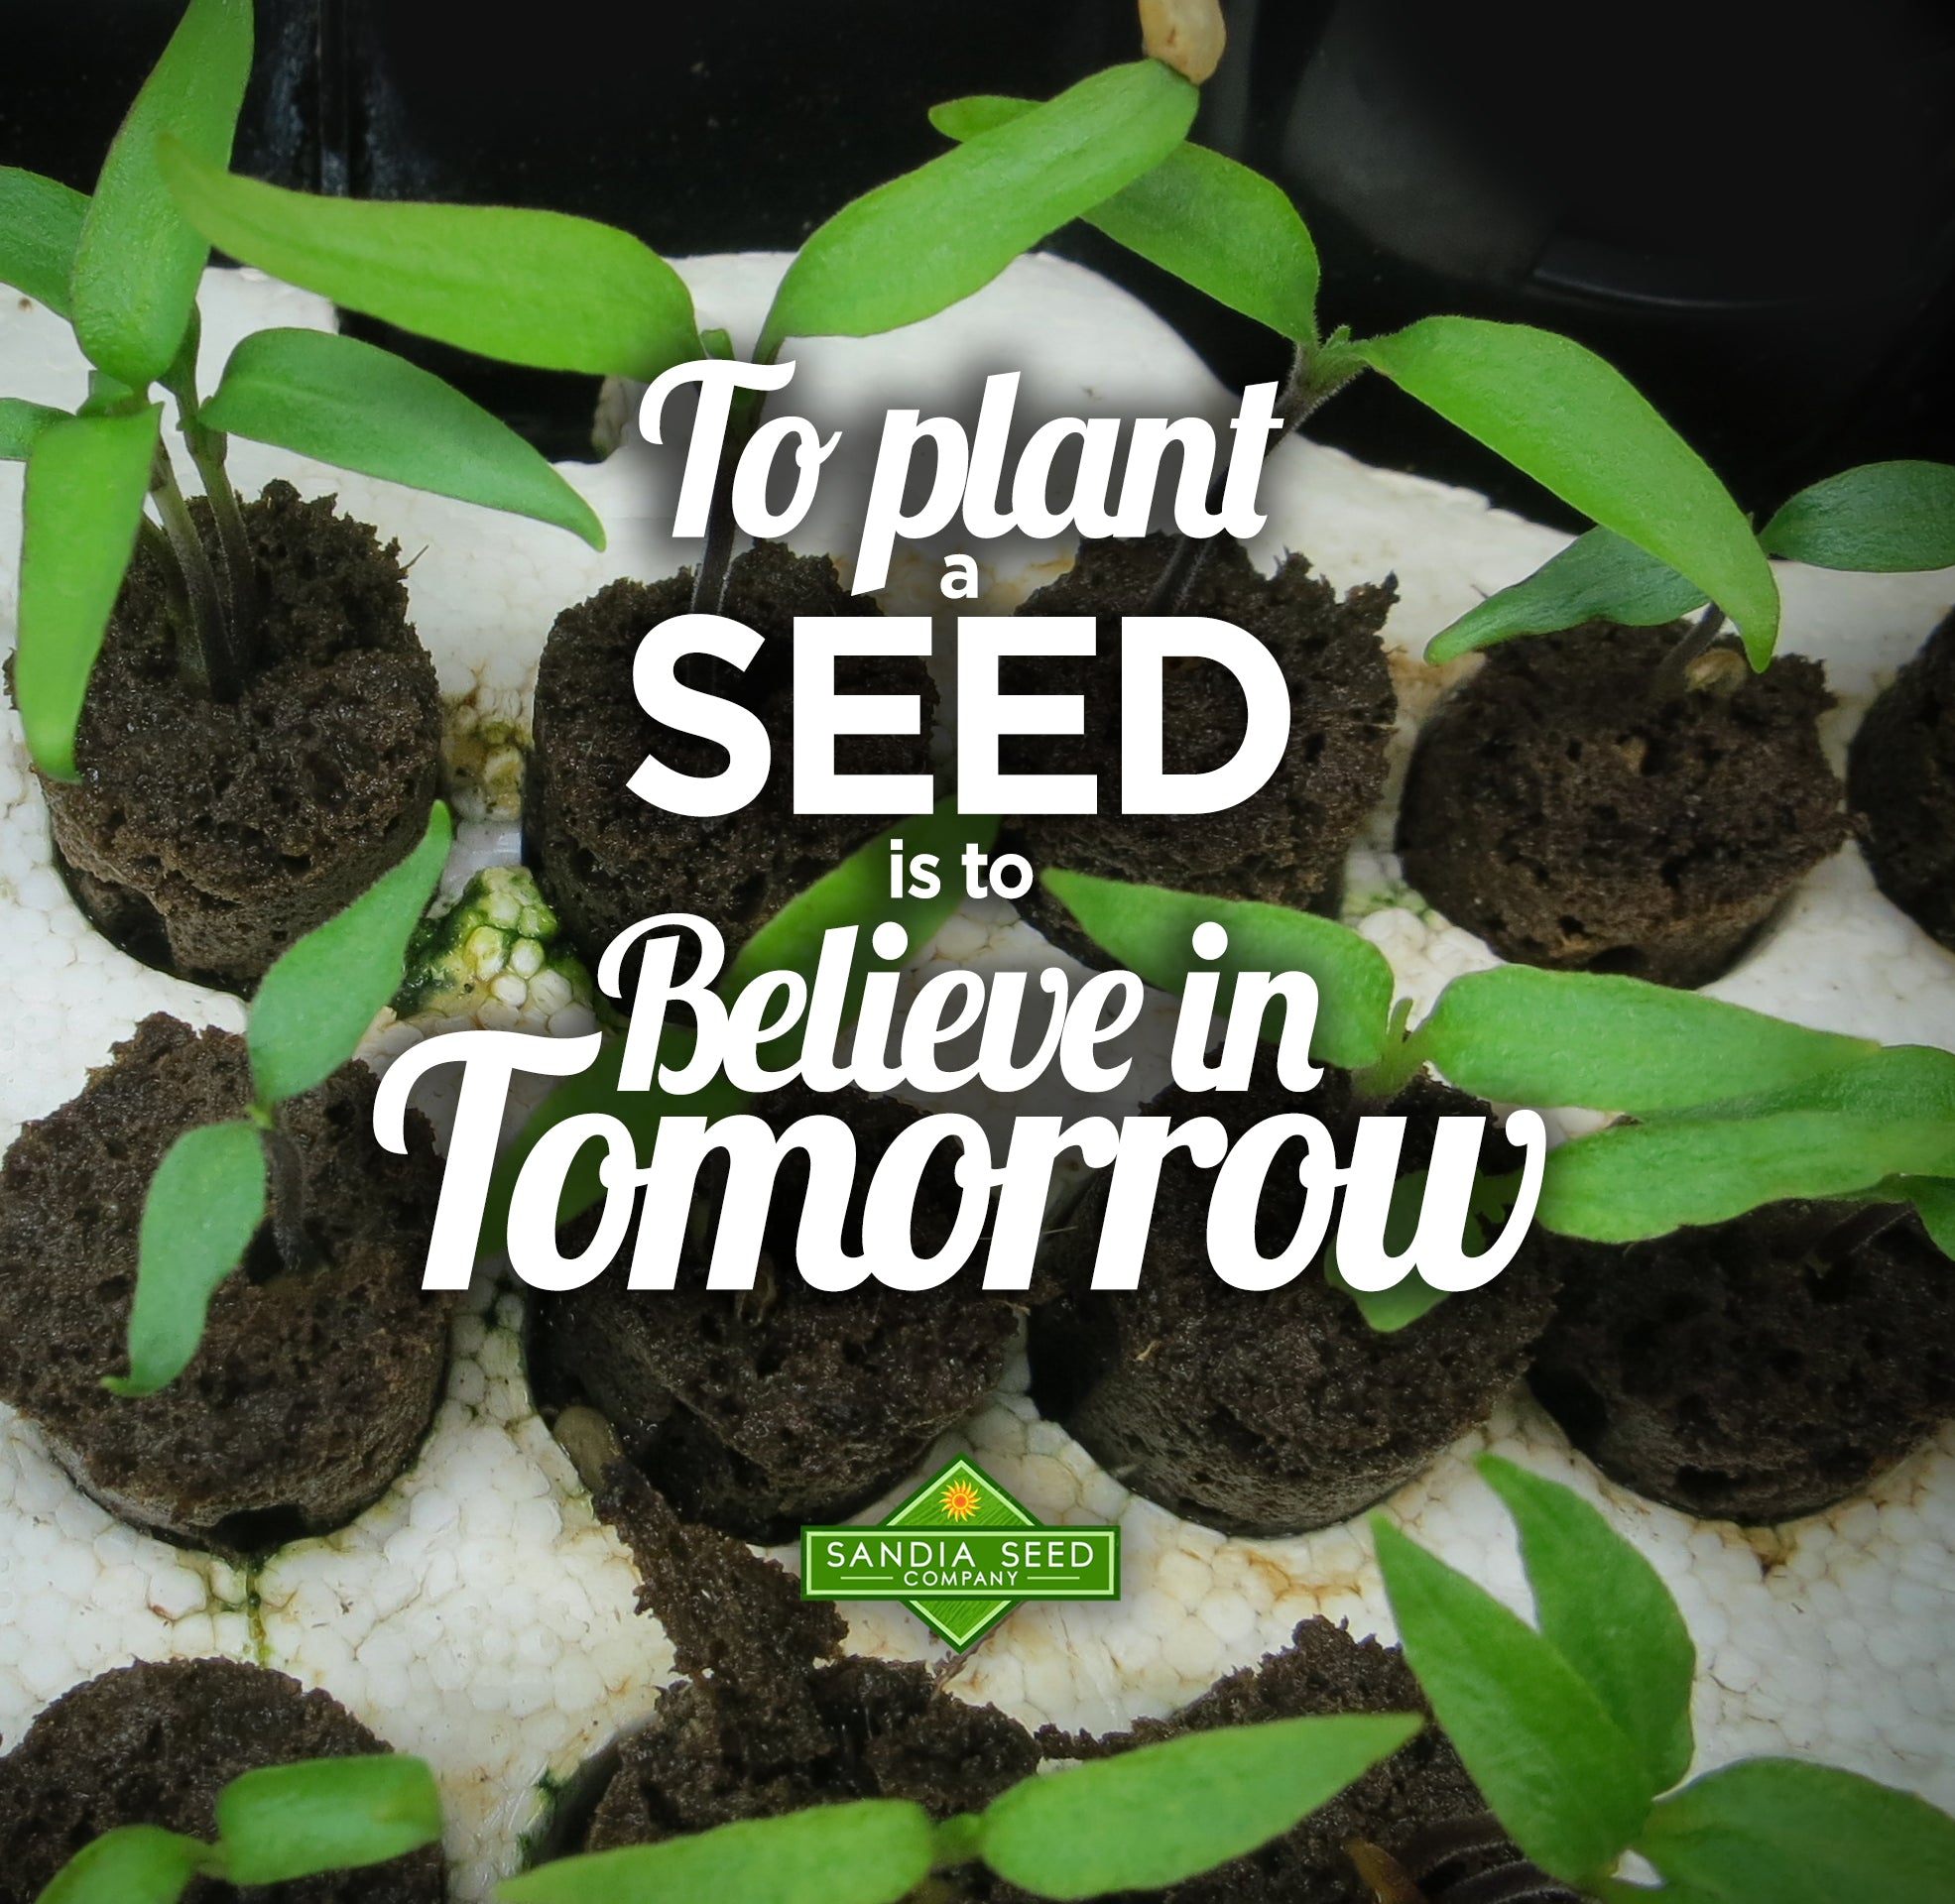 To Plant a Seed is to Believe in Tomorrow